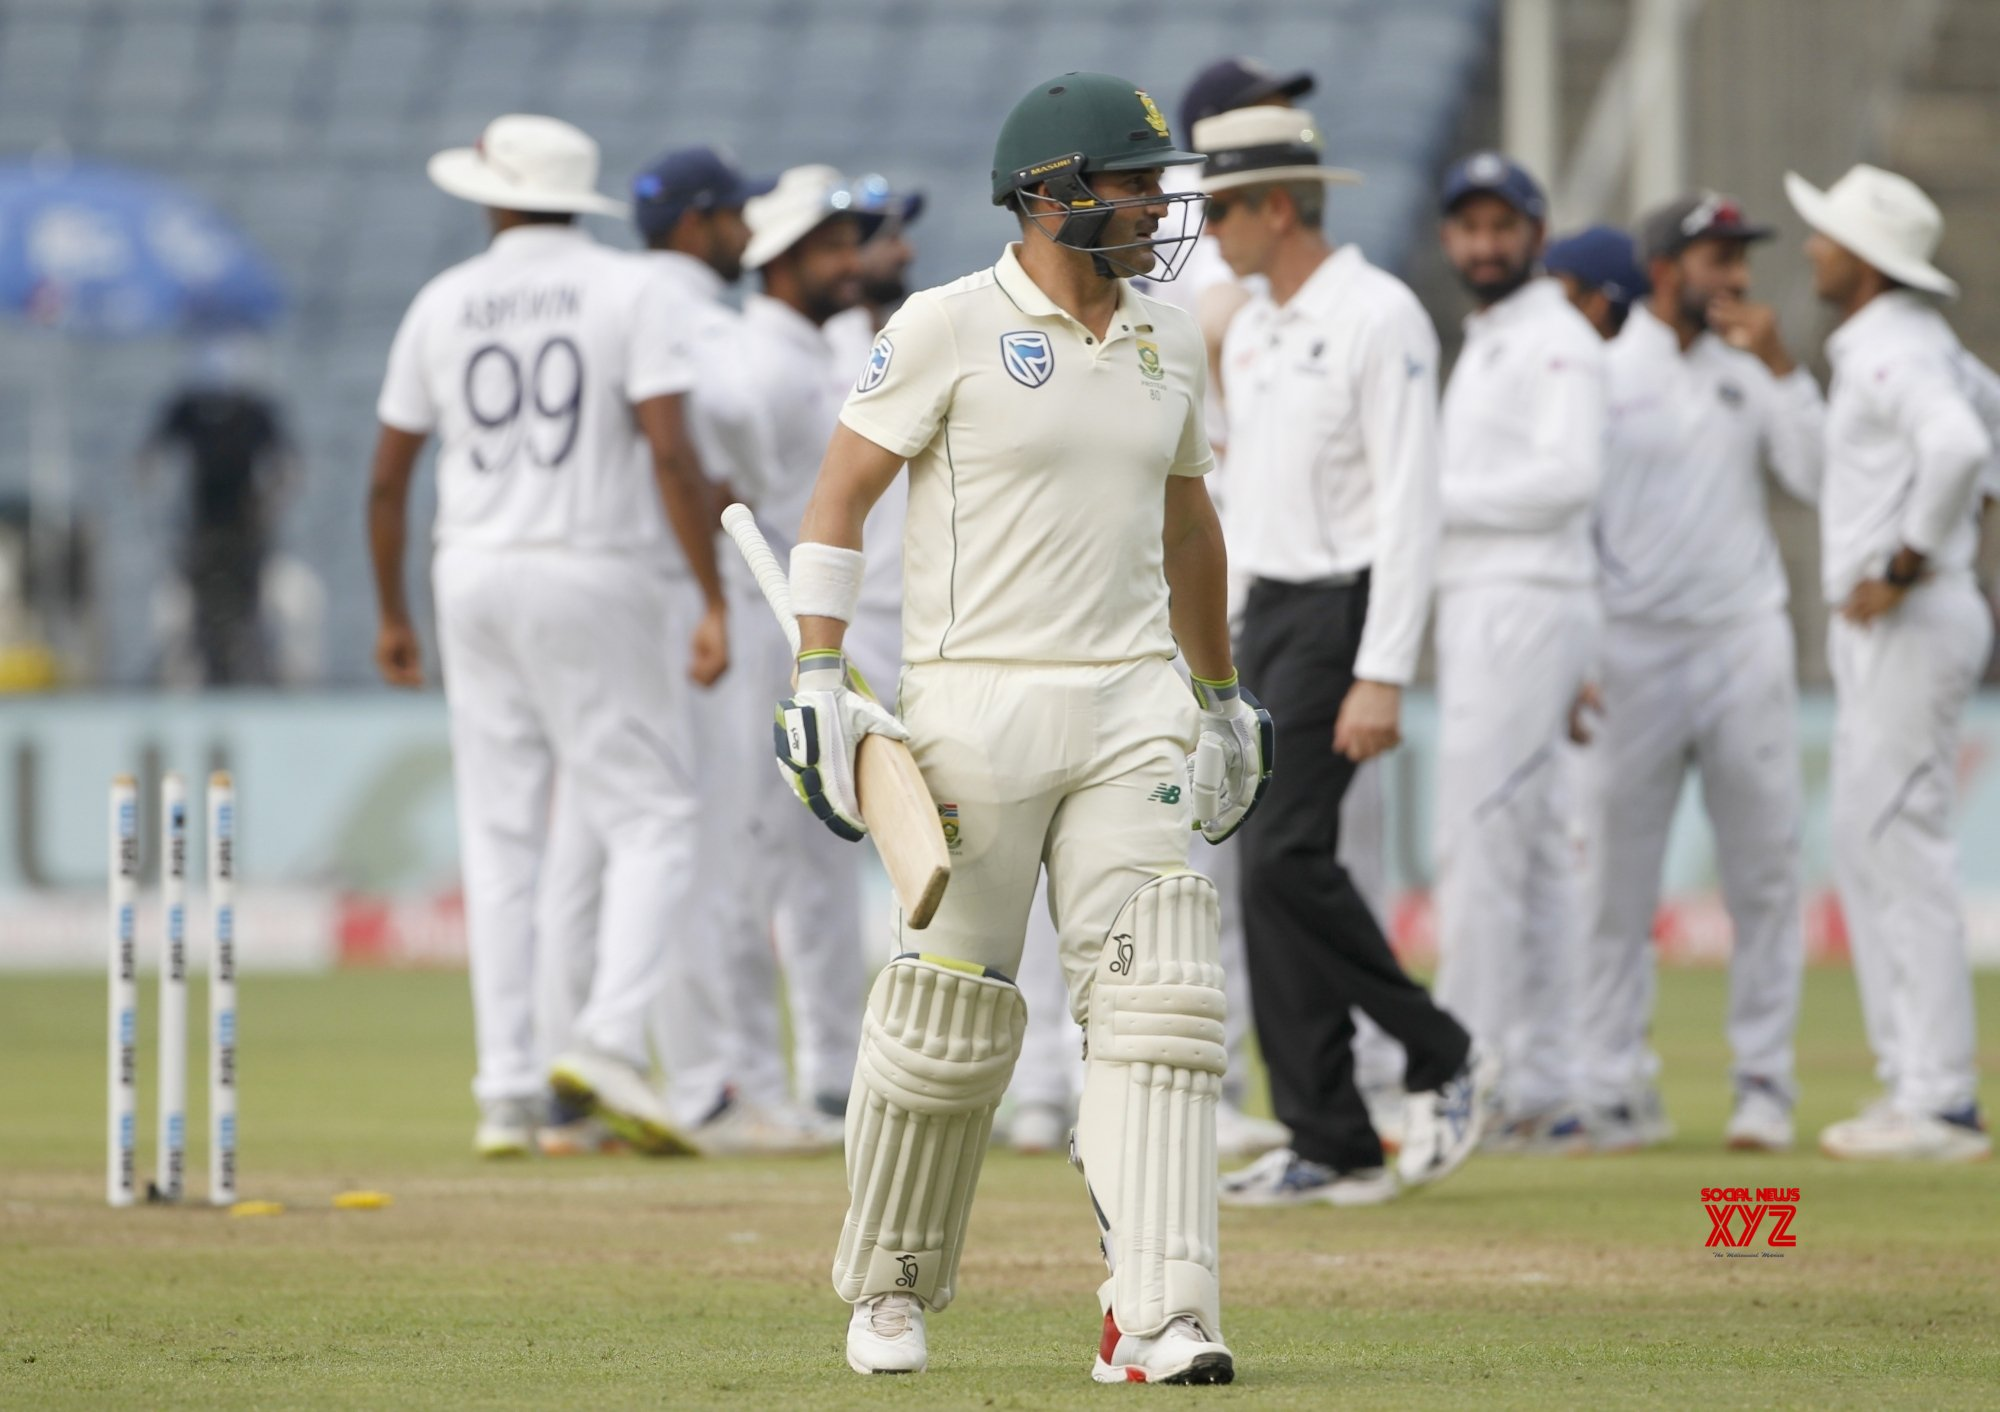 Pune: 2nd Test - India Vs South Africa - Day 2 (Batch - 22) #Gallery